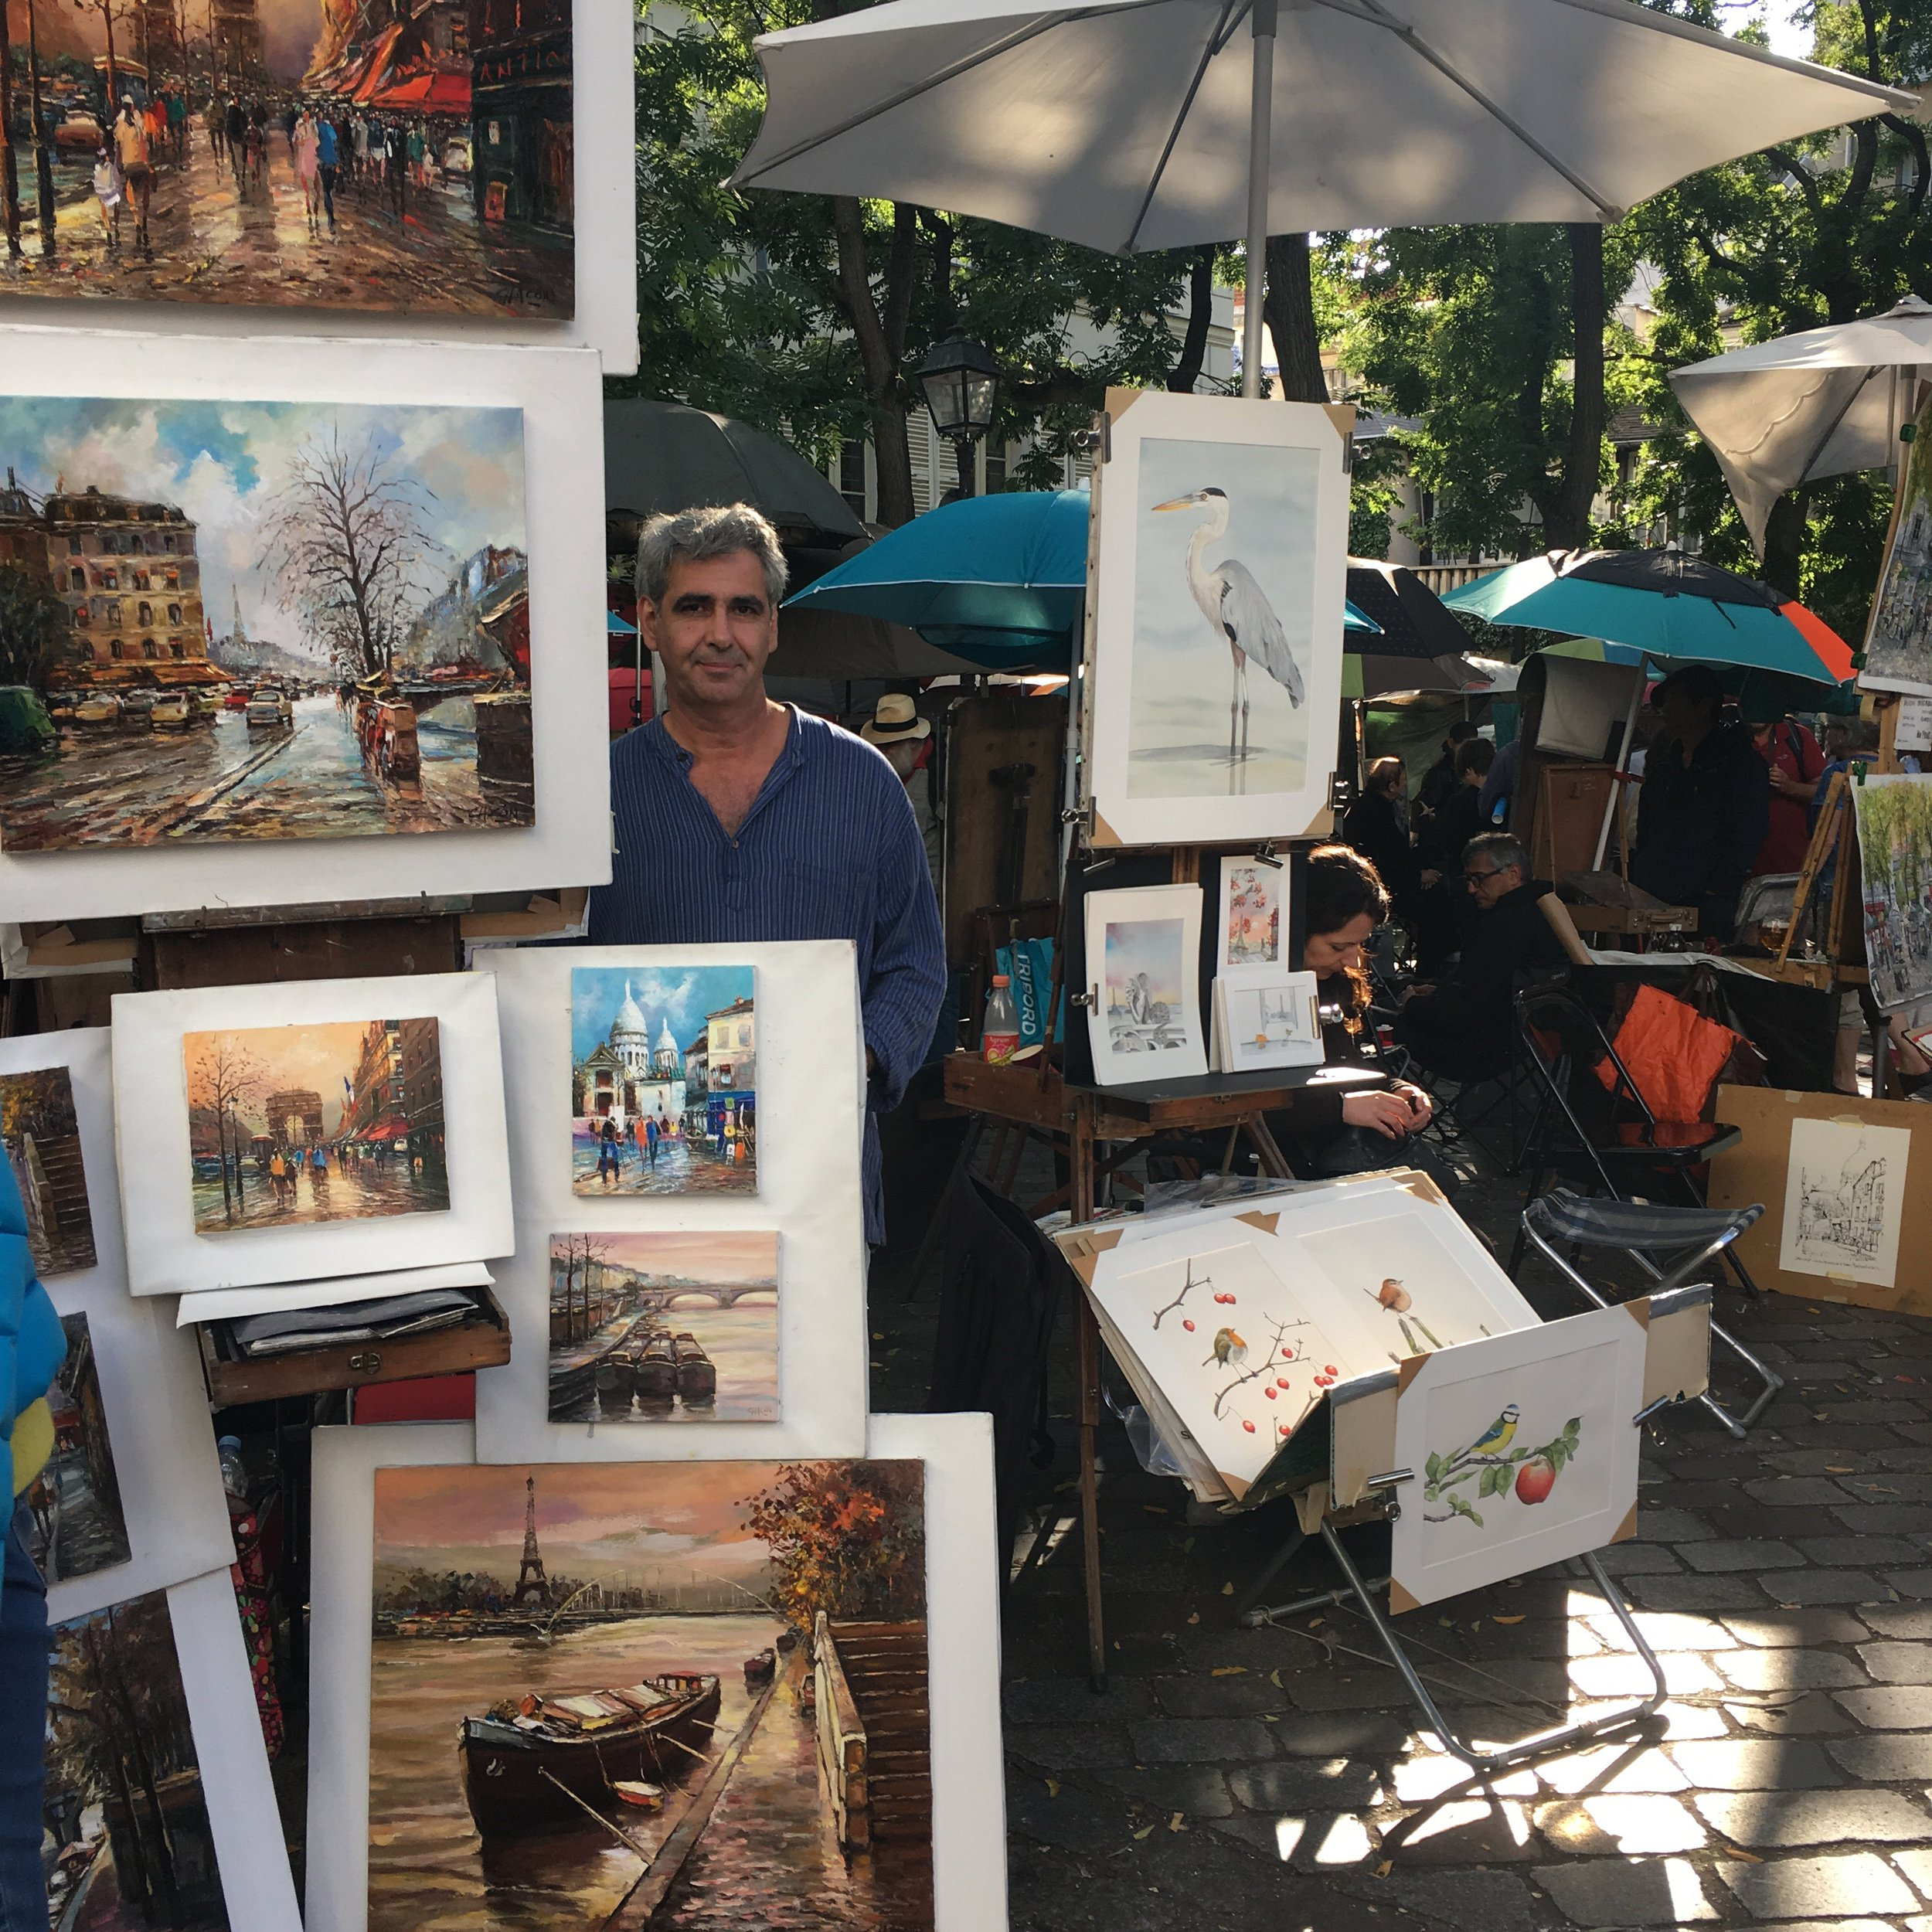 I was lucky enough to travel to Paris for my 18th birthday and enjoyed exploring the art quarter of Montmartre - there were so many talented performers, musicians, and artists.